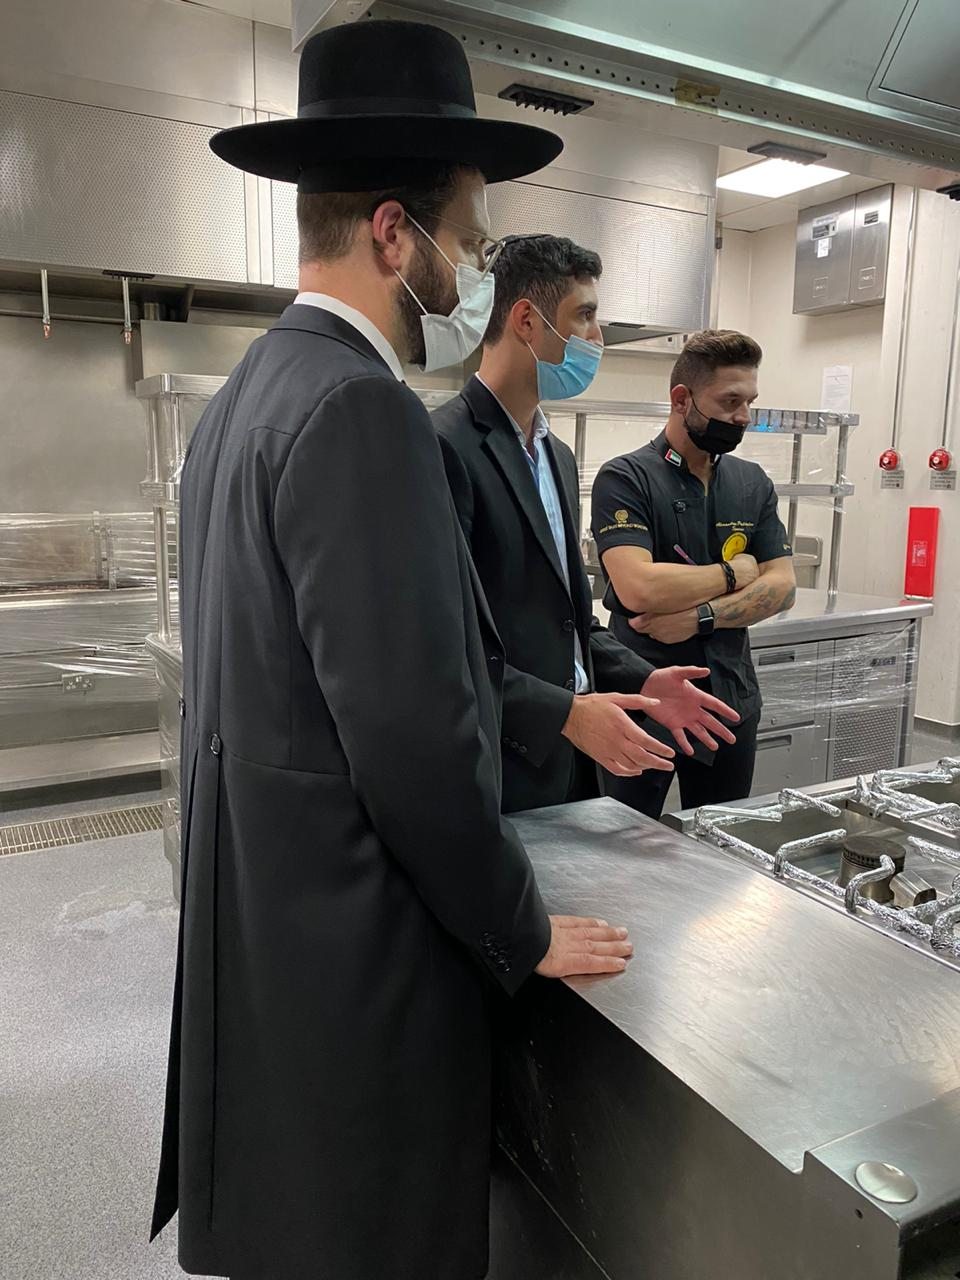 Rabbi Yissachar Krakowski examines the kitchen with a local mashgiach (kosher supervisor) and Khaled El-Shamzi, head of hospitality for the UAE's Ministry of Presidential Affairs. Credit: Elli Kriel.